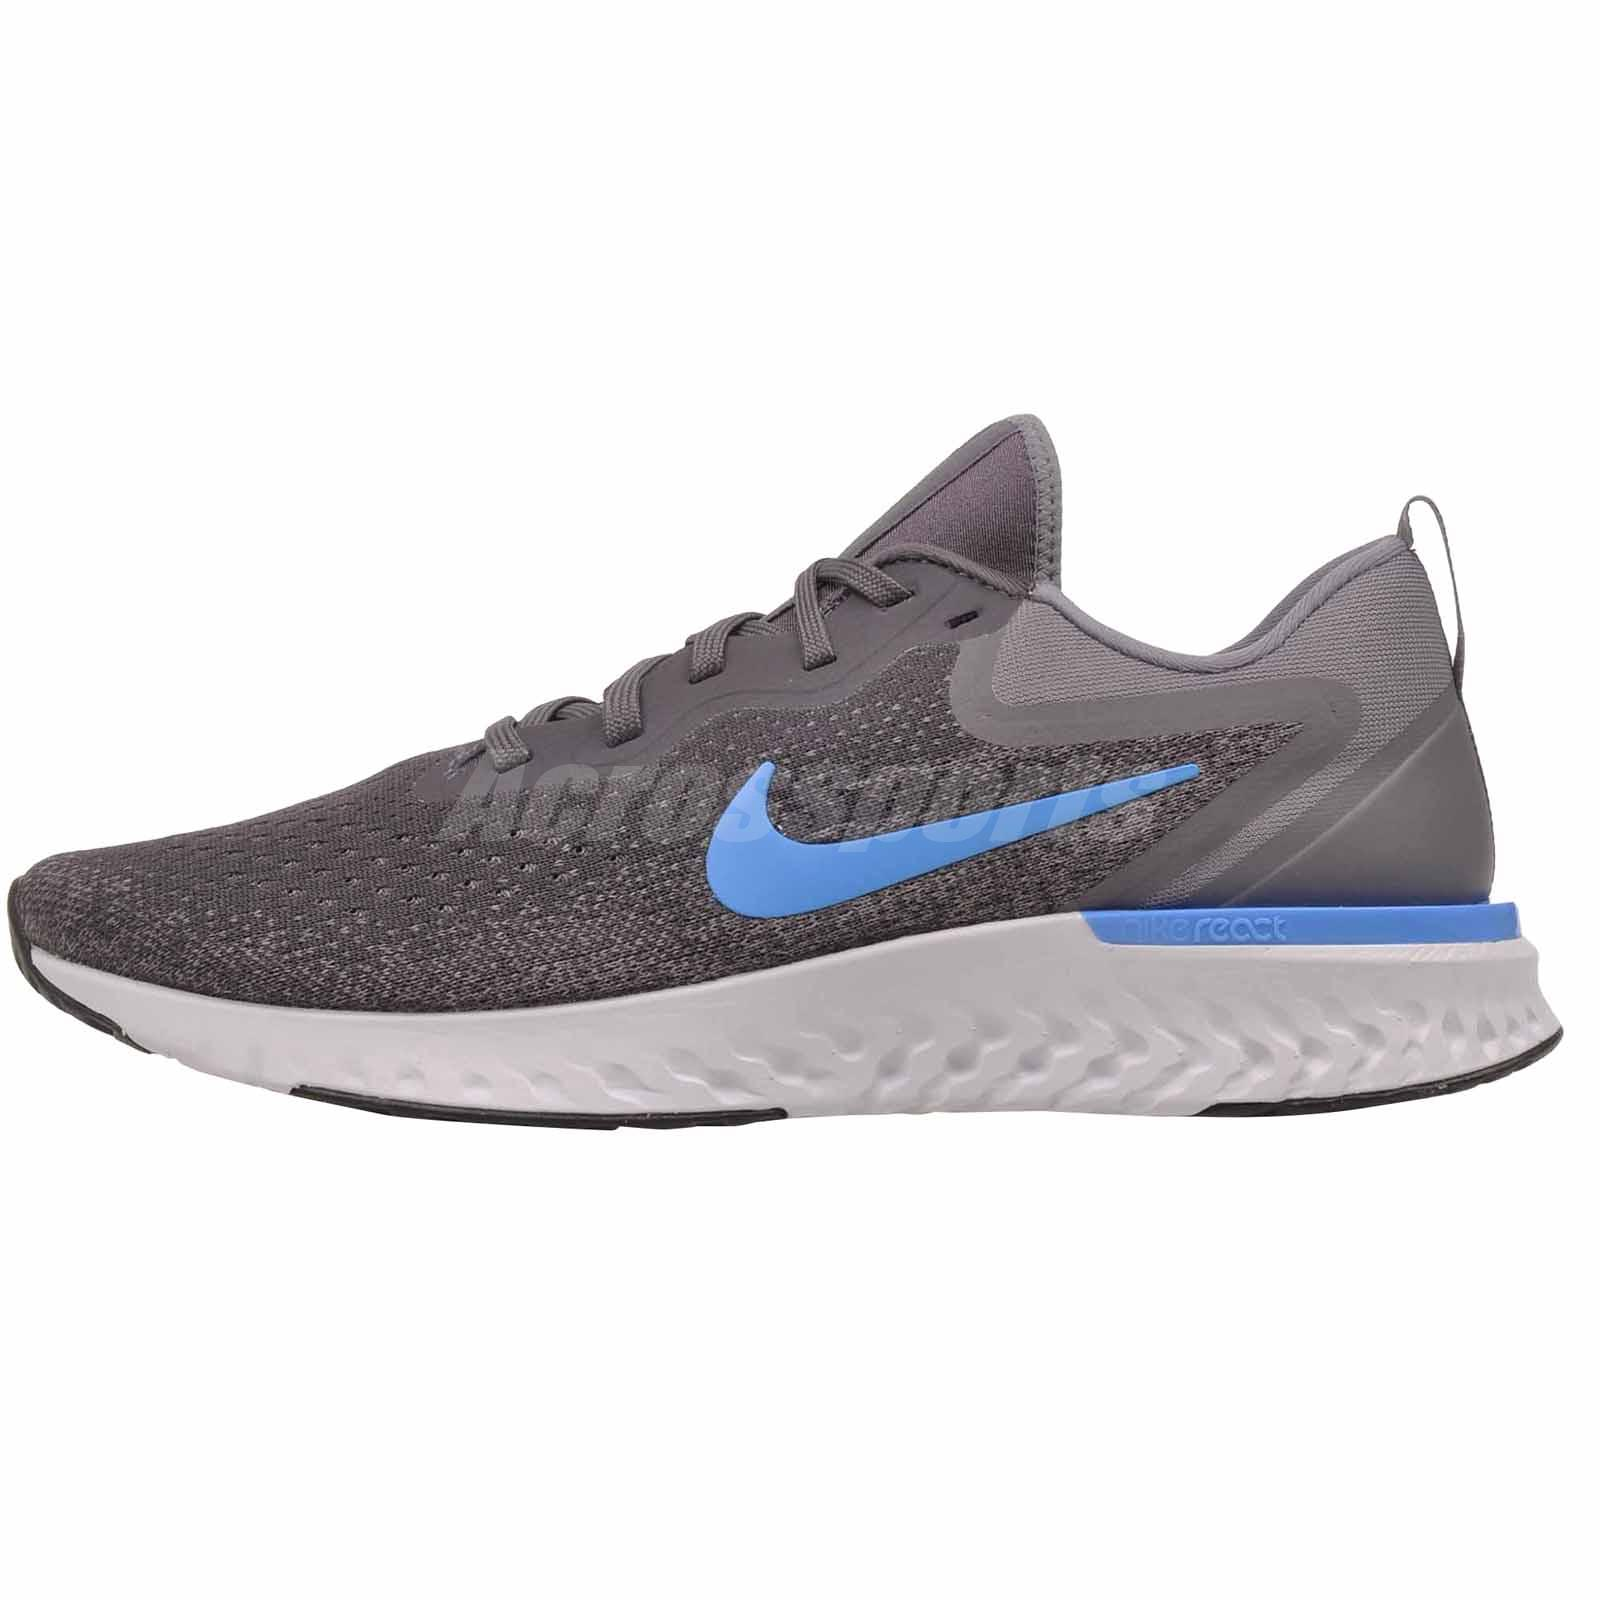 7d78eb3bc81 Nike Odyssey React Mens Running Shoes Grey Blue AO9819-008